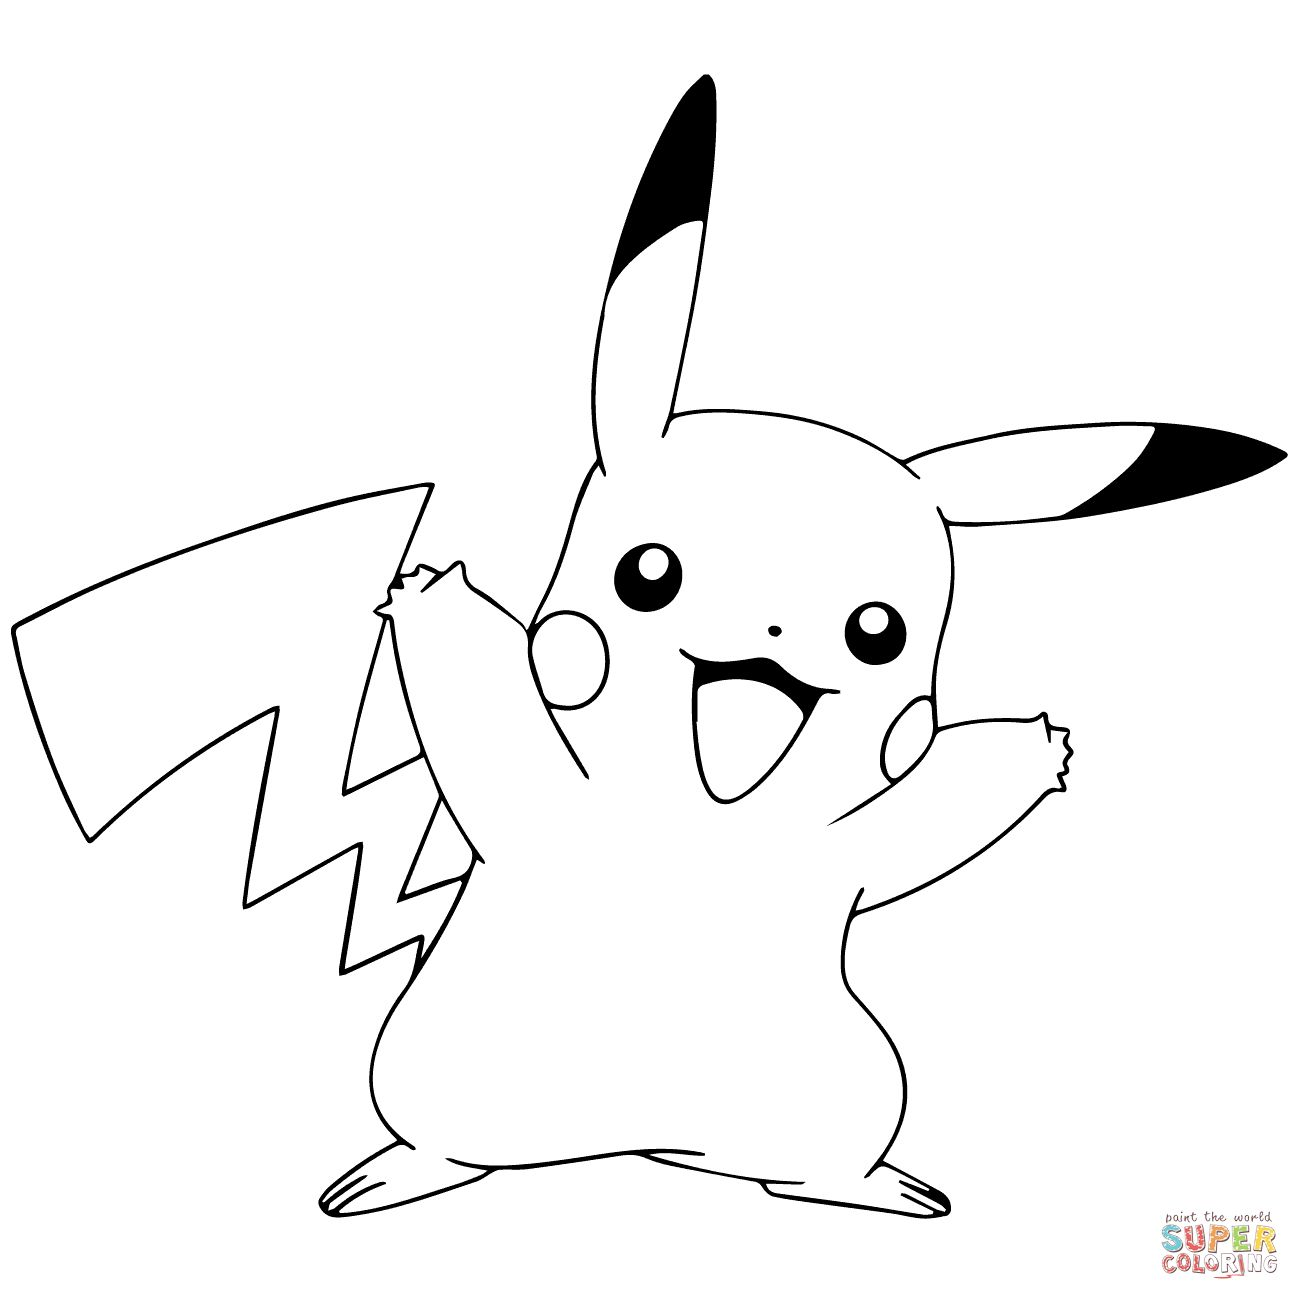 pikachu coloring page pokemon coloring pages pikachu part 6 free resource pikachu page coloring